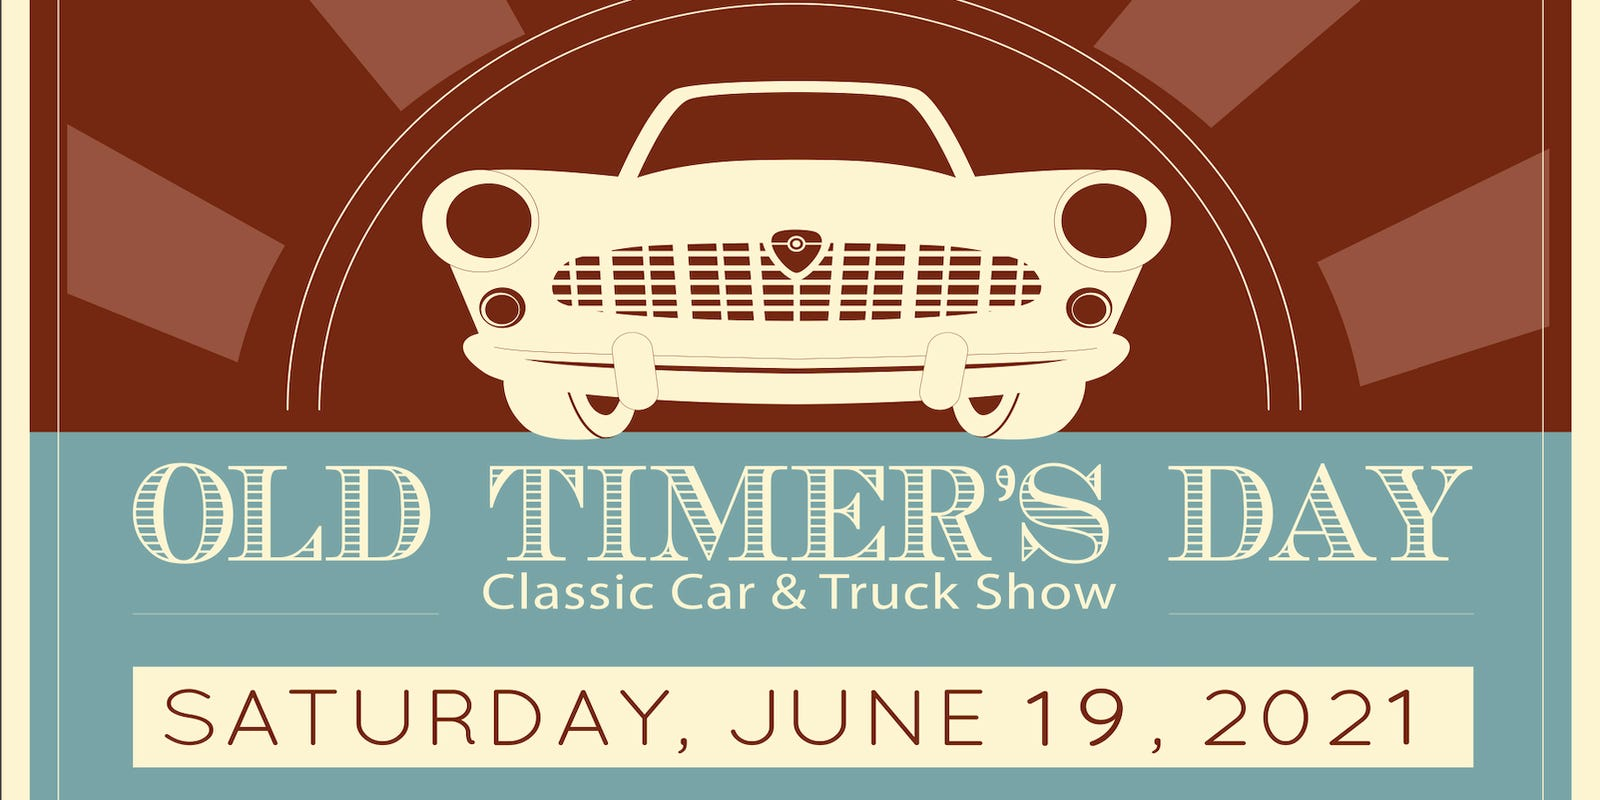 Old Timer's Day